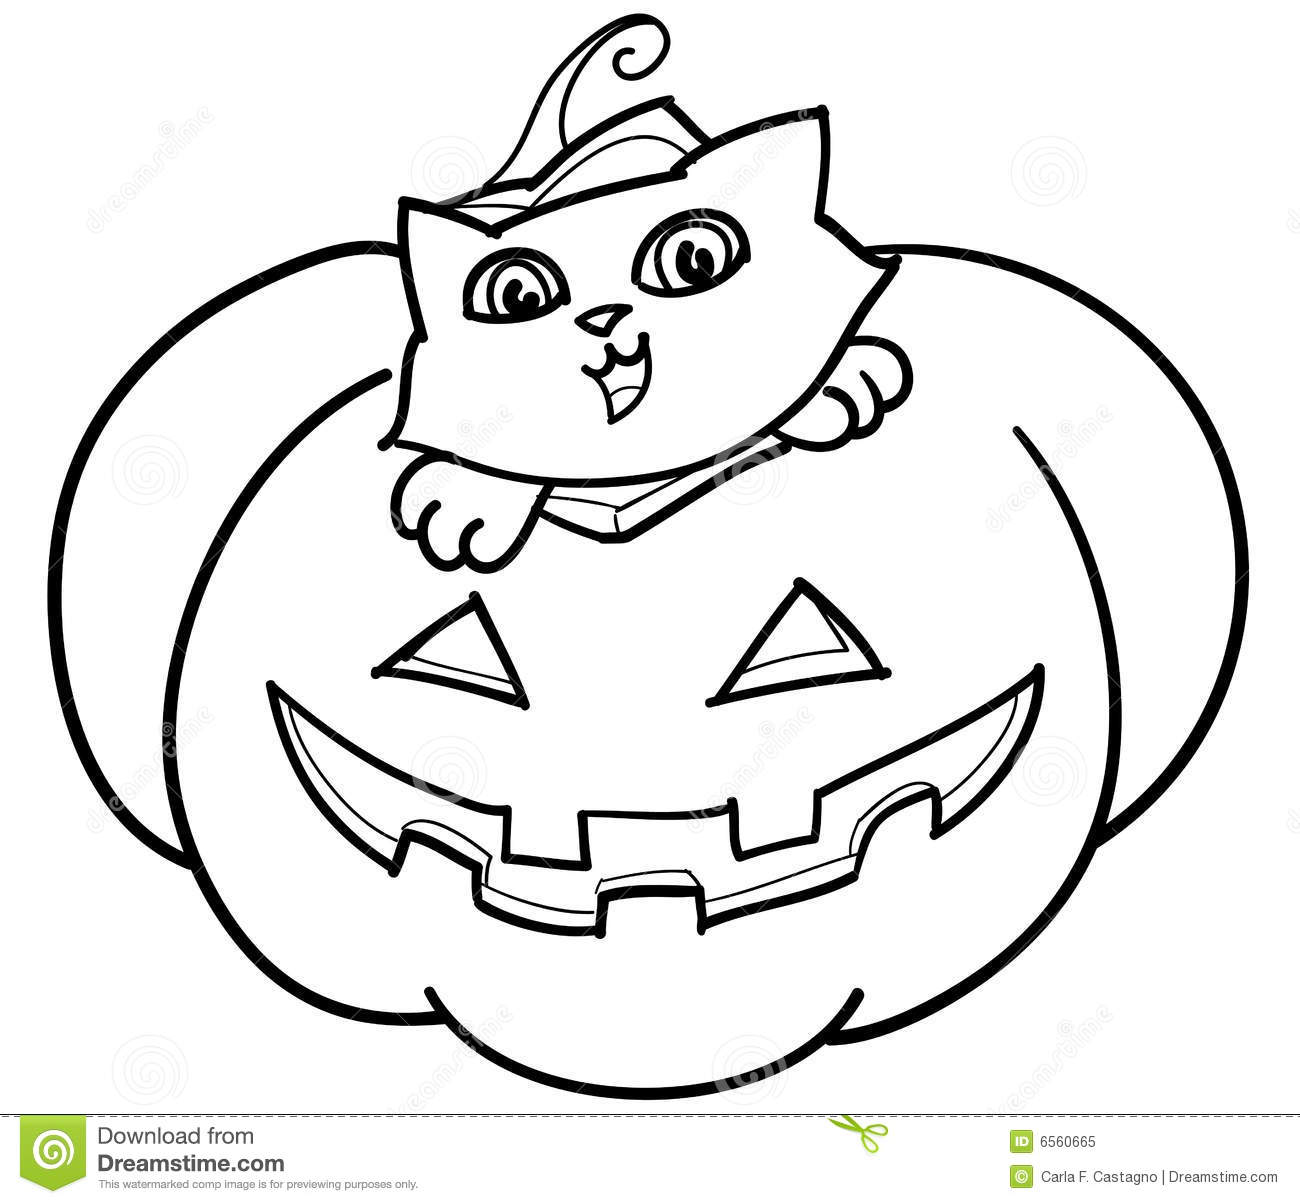 inside of a pumpkin coloring pages | Cat In Jack O' Lantern Vector Royalty Free Stock Photo ...